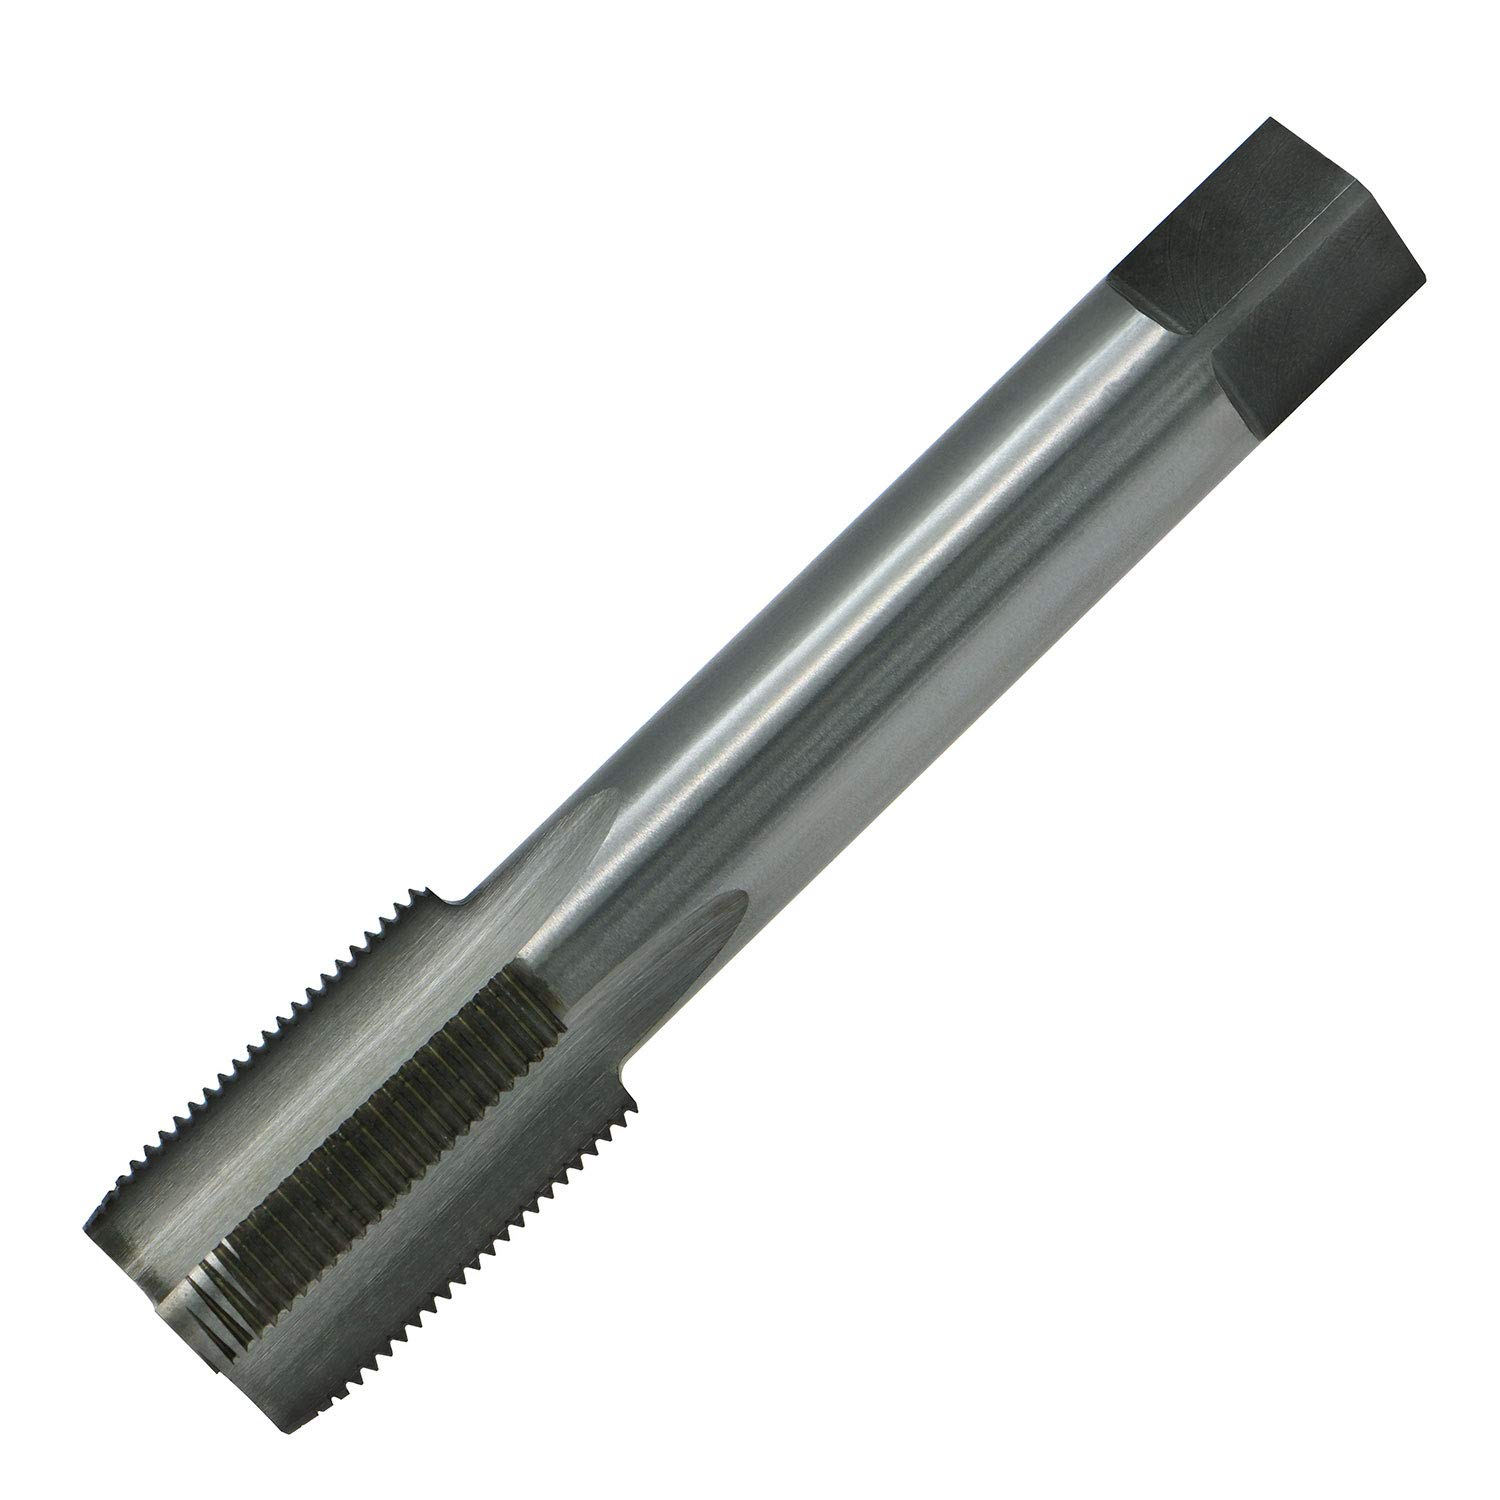 GZTool 7/18-18 UNS Left Hand Thread Tap 7/8'' - 18 TPI High Speed Steel HSS by GZTool